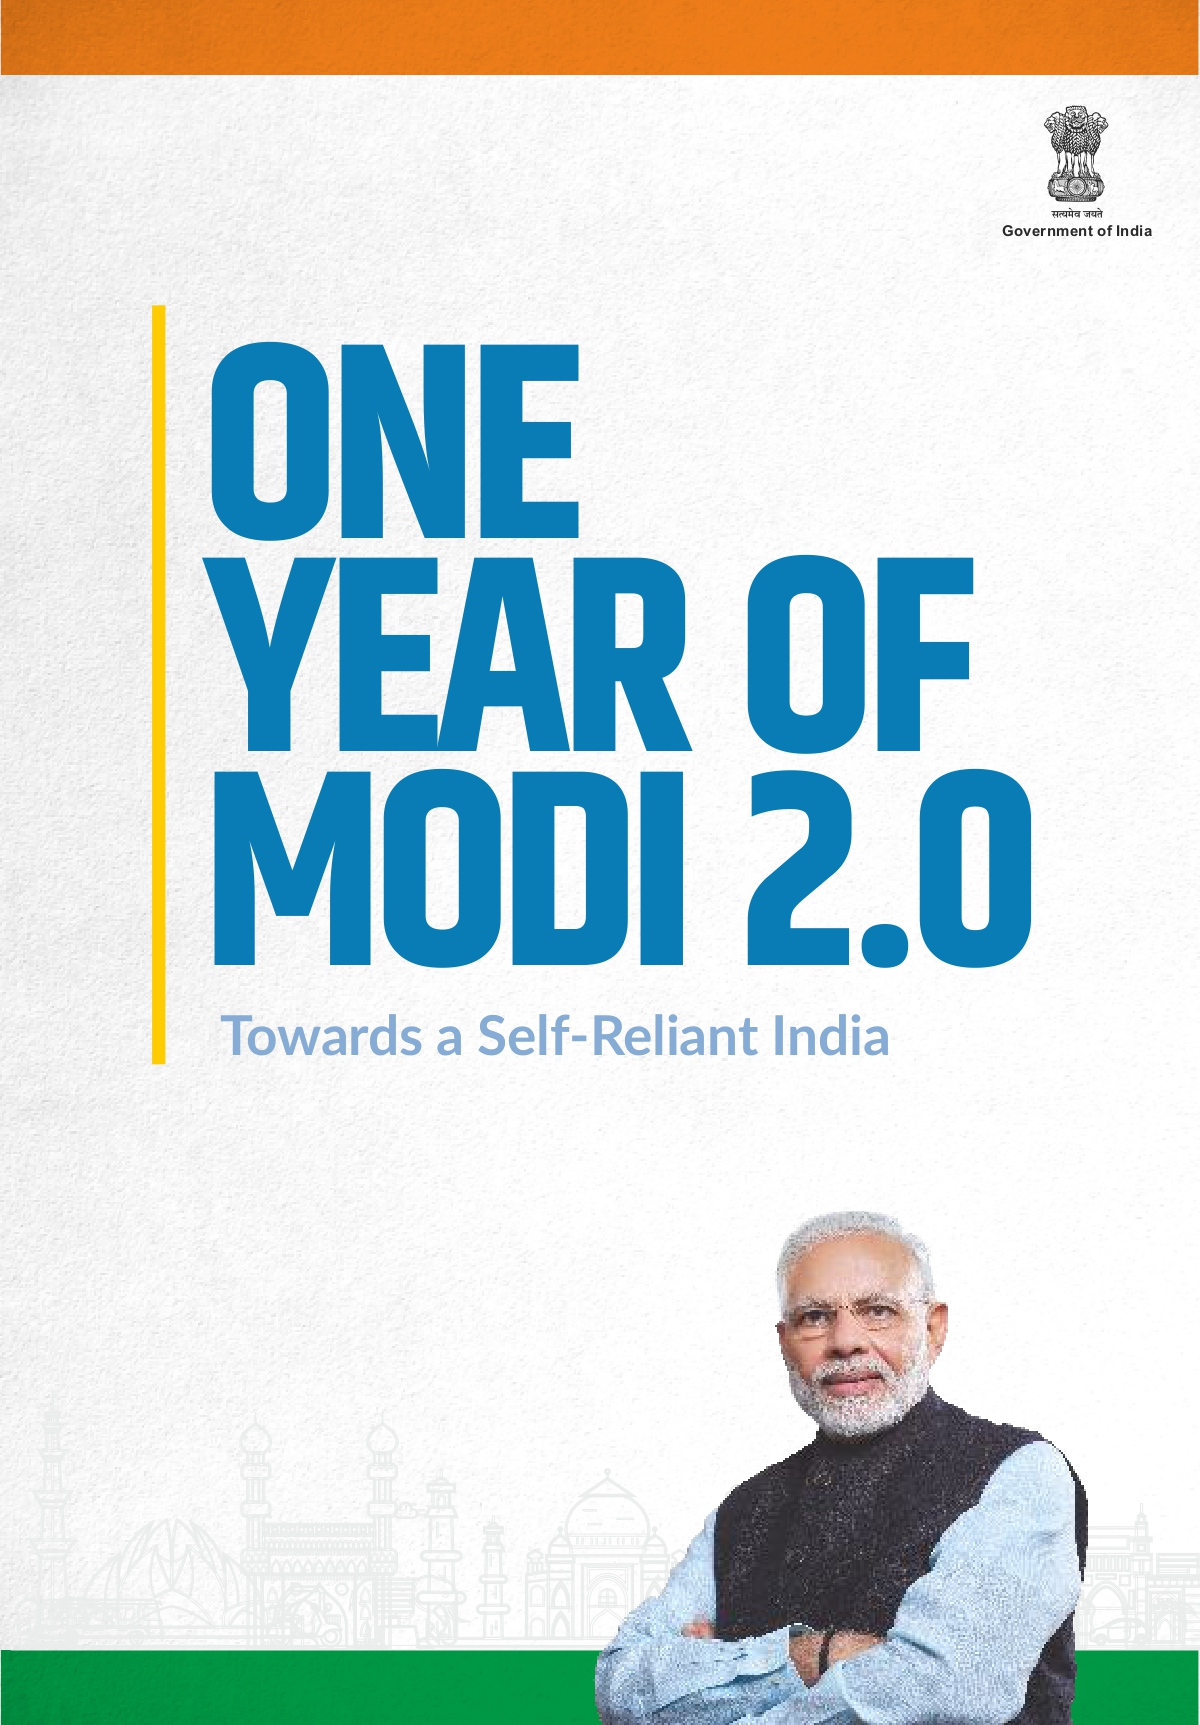 Image of cover of Annual Report 2019-2020